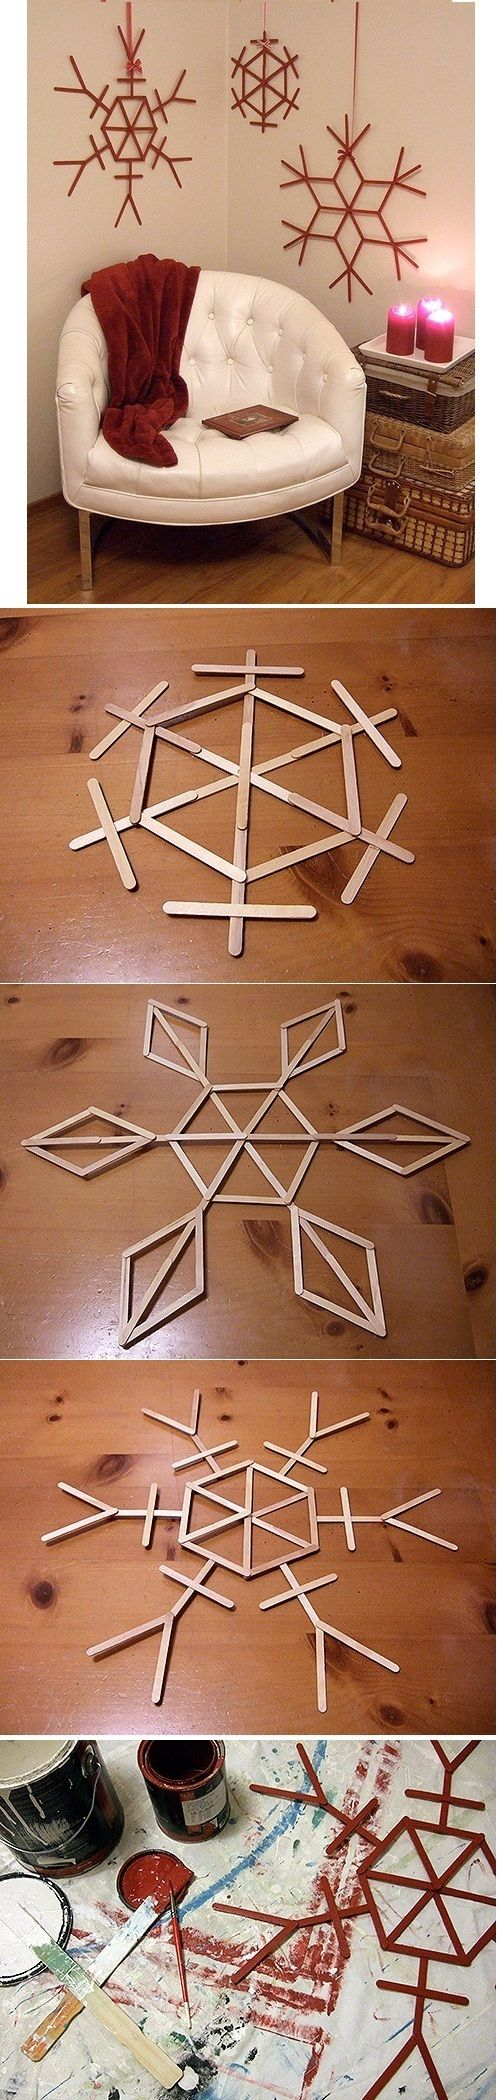 Popsicle-Stick Snowflakes, so fun!